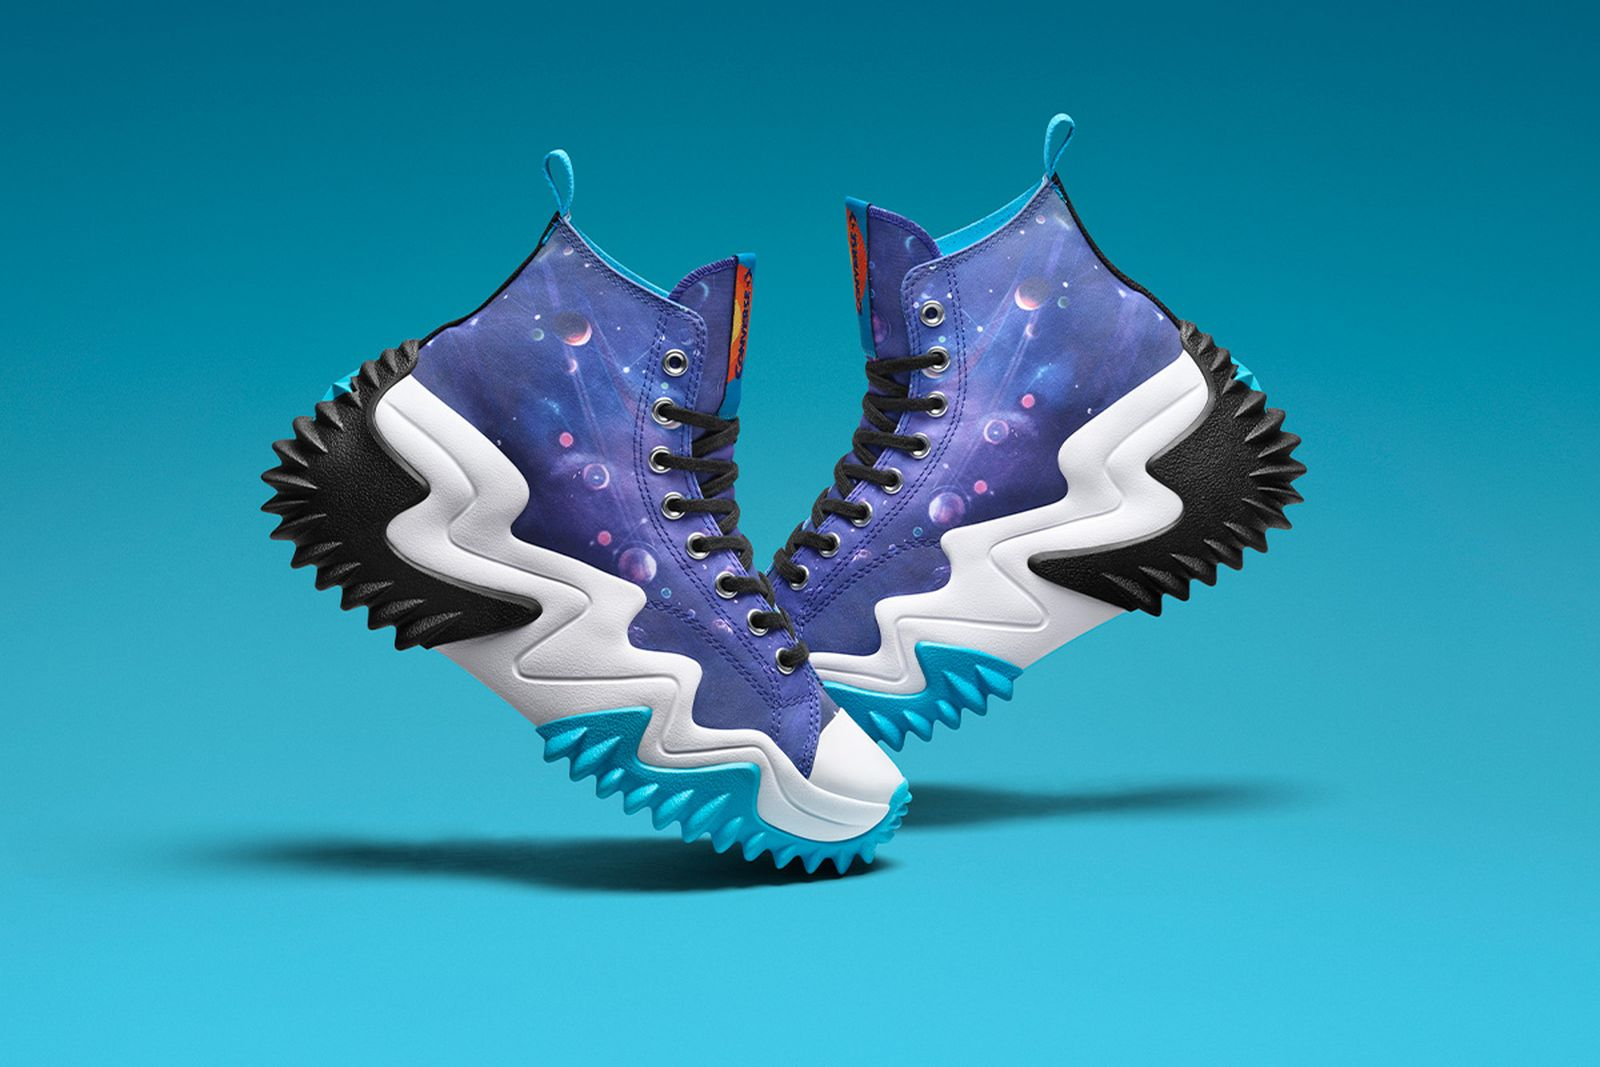 converse-space-jam-2-pack-release-date-price-01